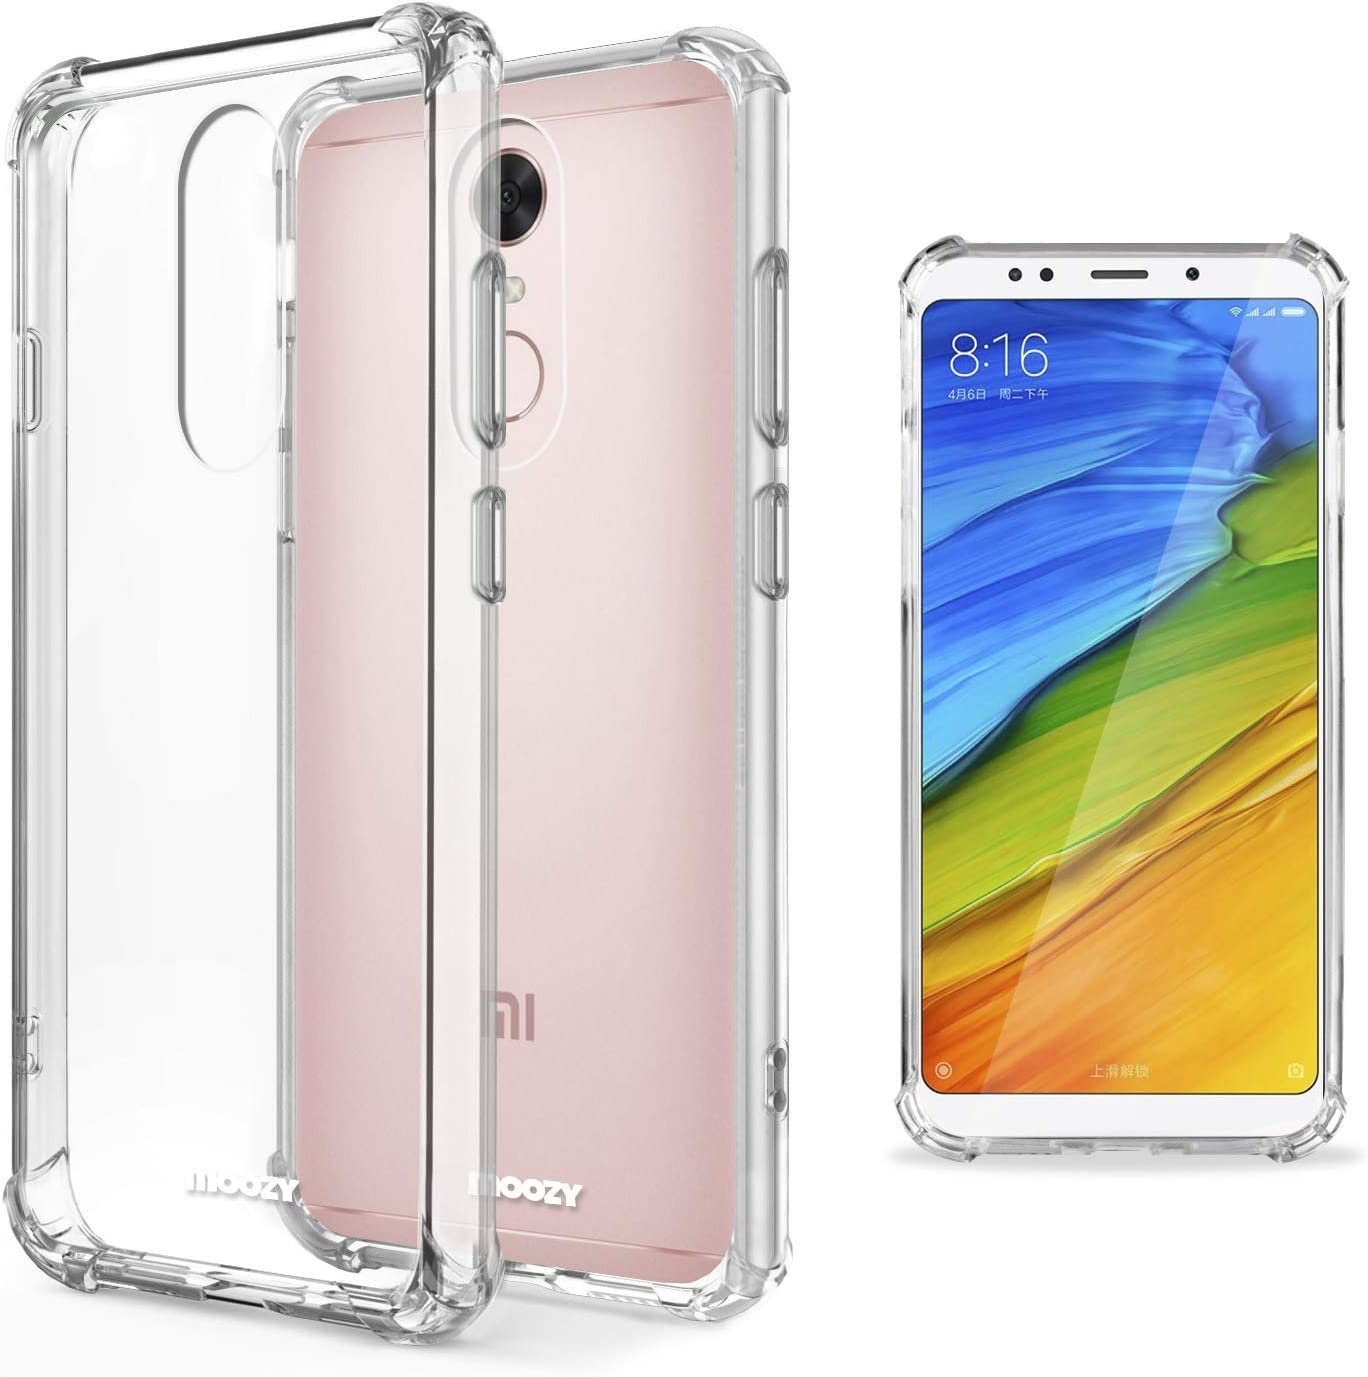 Moozy Funda Silicona Antigolpes para Xiaomi Redmi 5 - Transparente Crystal Clear TPU Case Cover Flexible